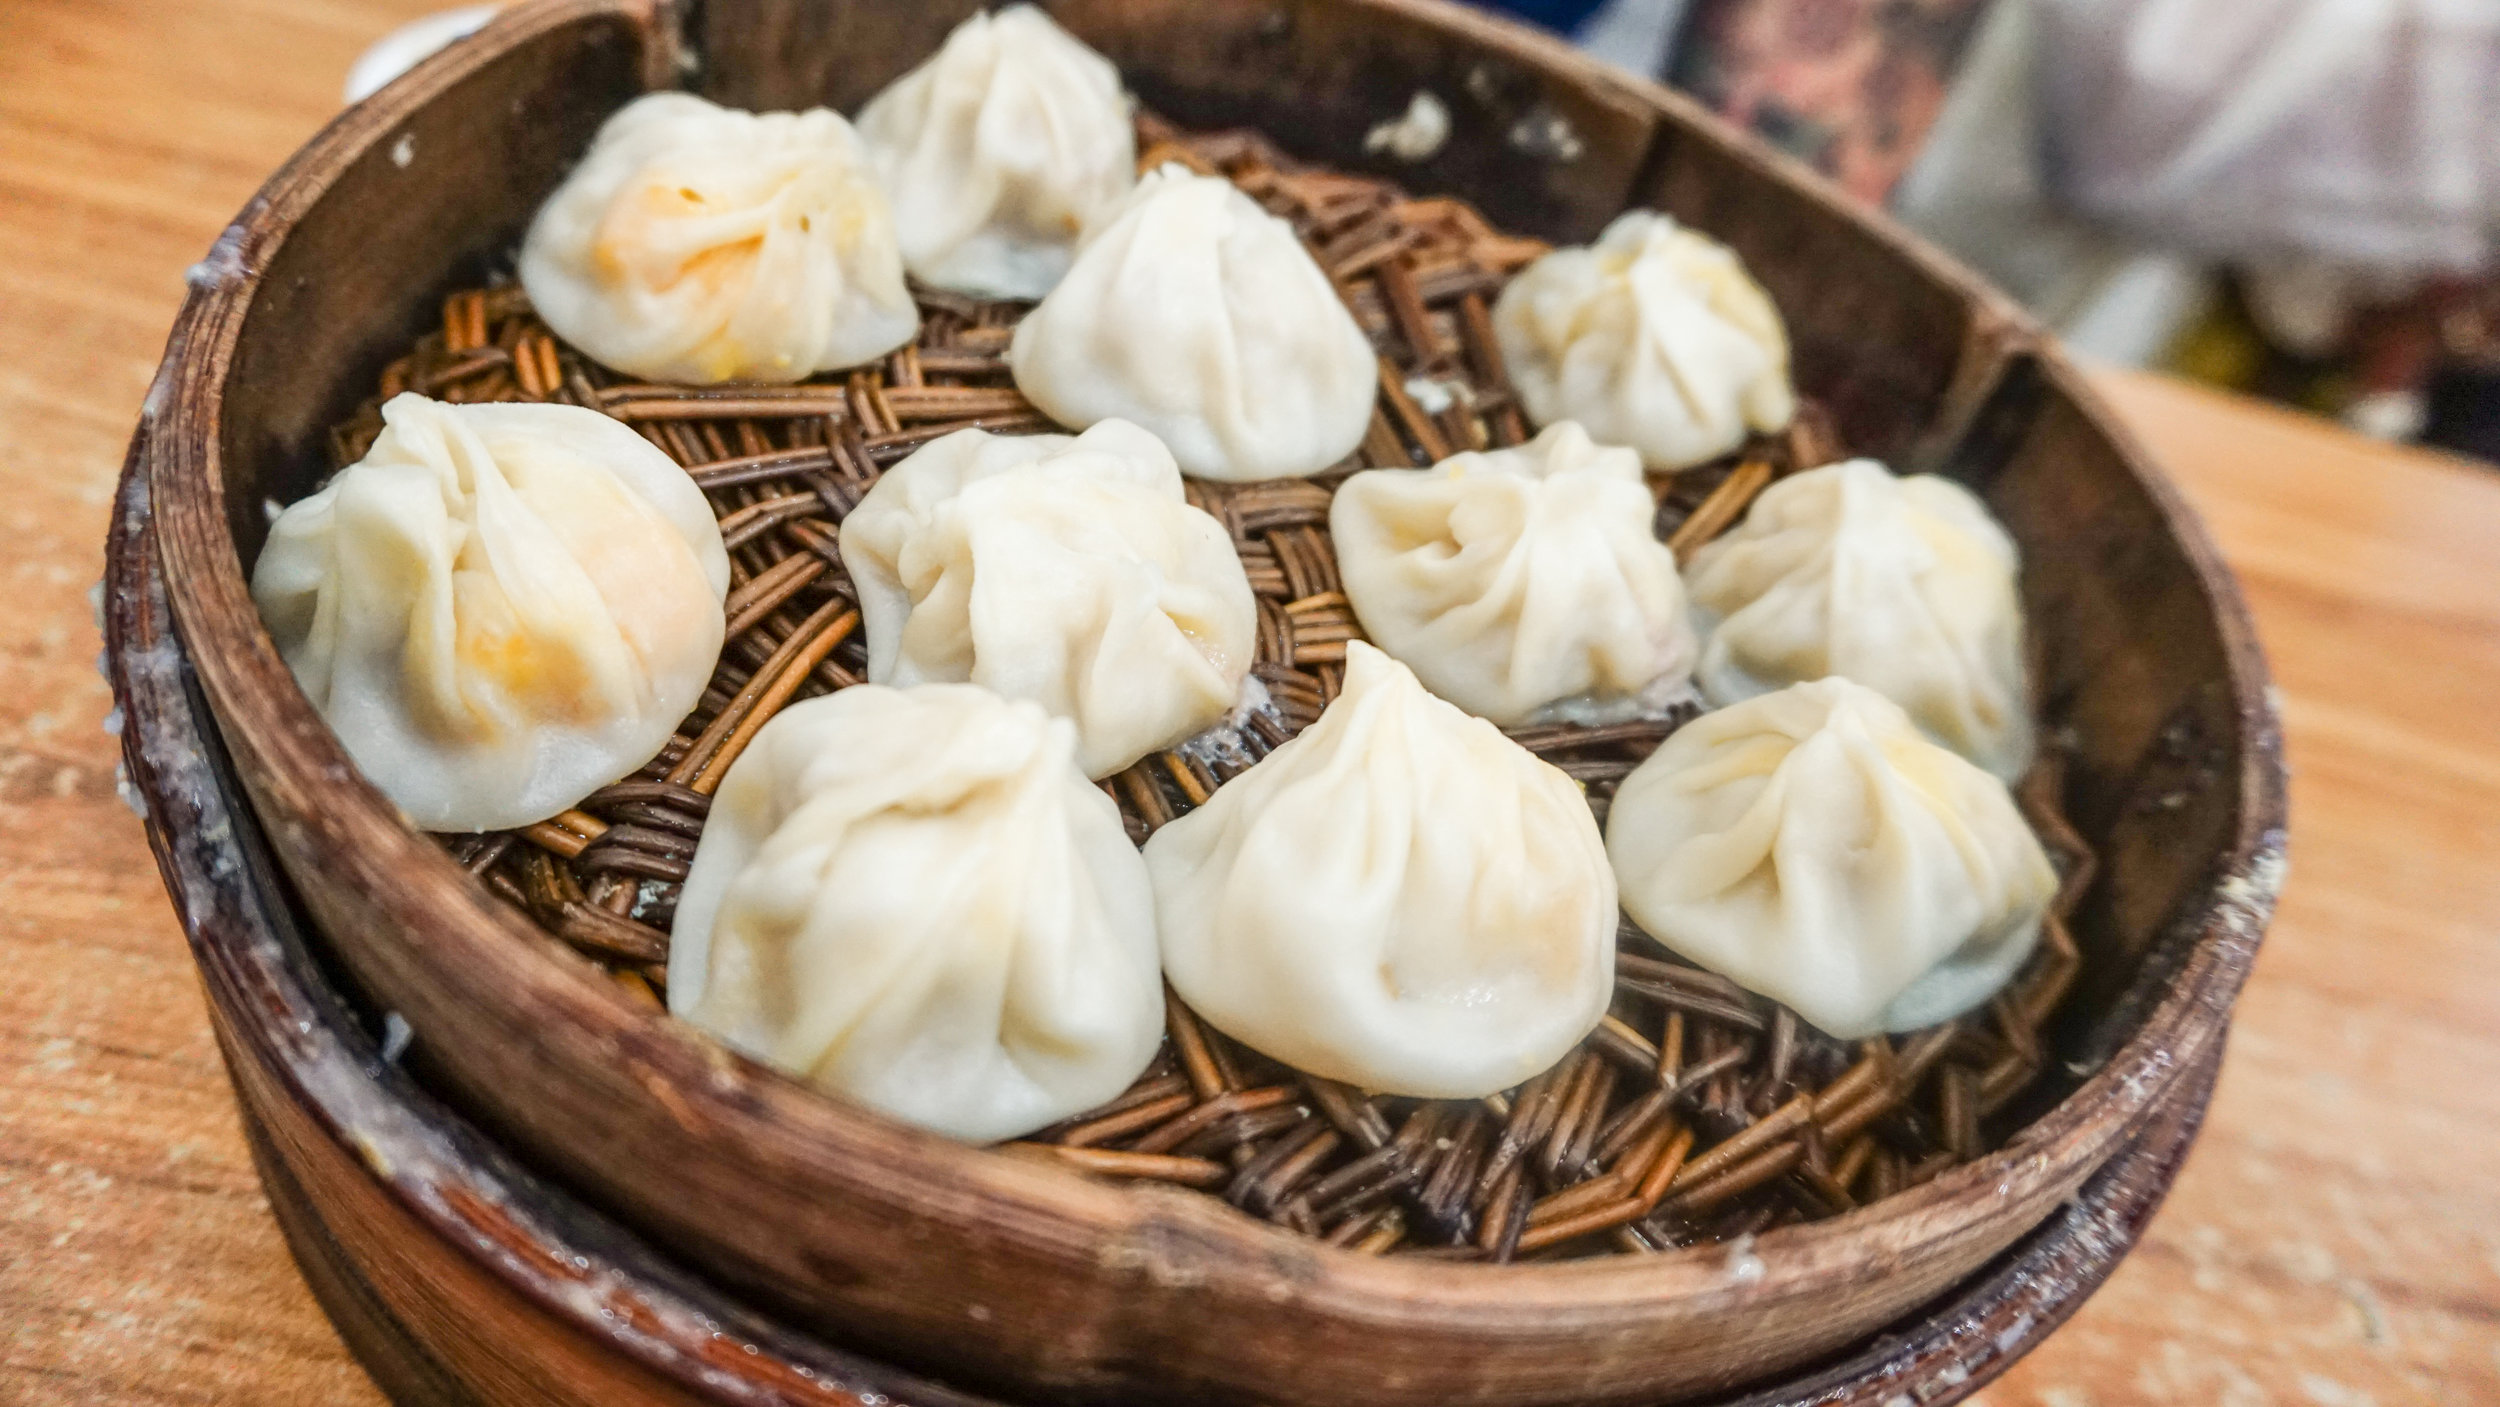 No idea what we ordered - But it was hands down the BEST, juiciest, and most flavorful Chinese Soup Dumplings I've ever had.